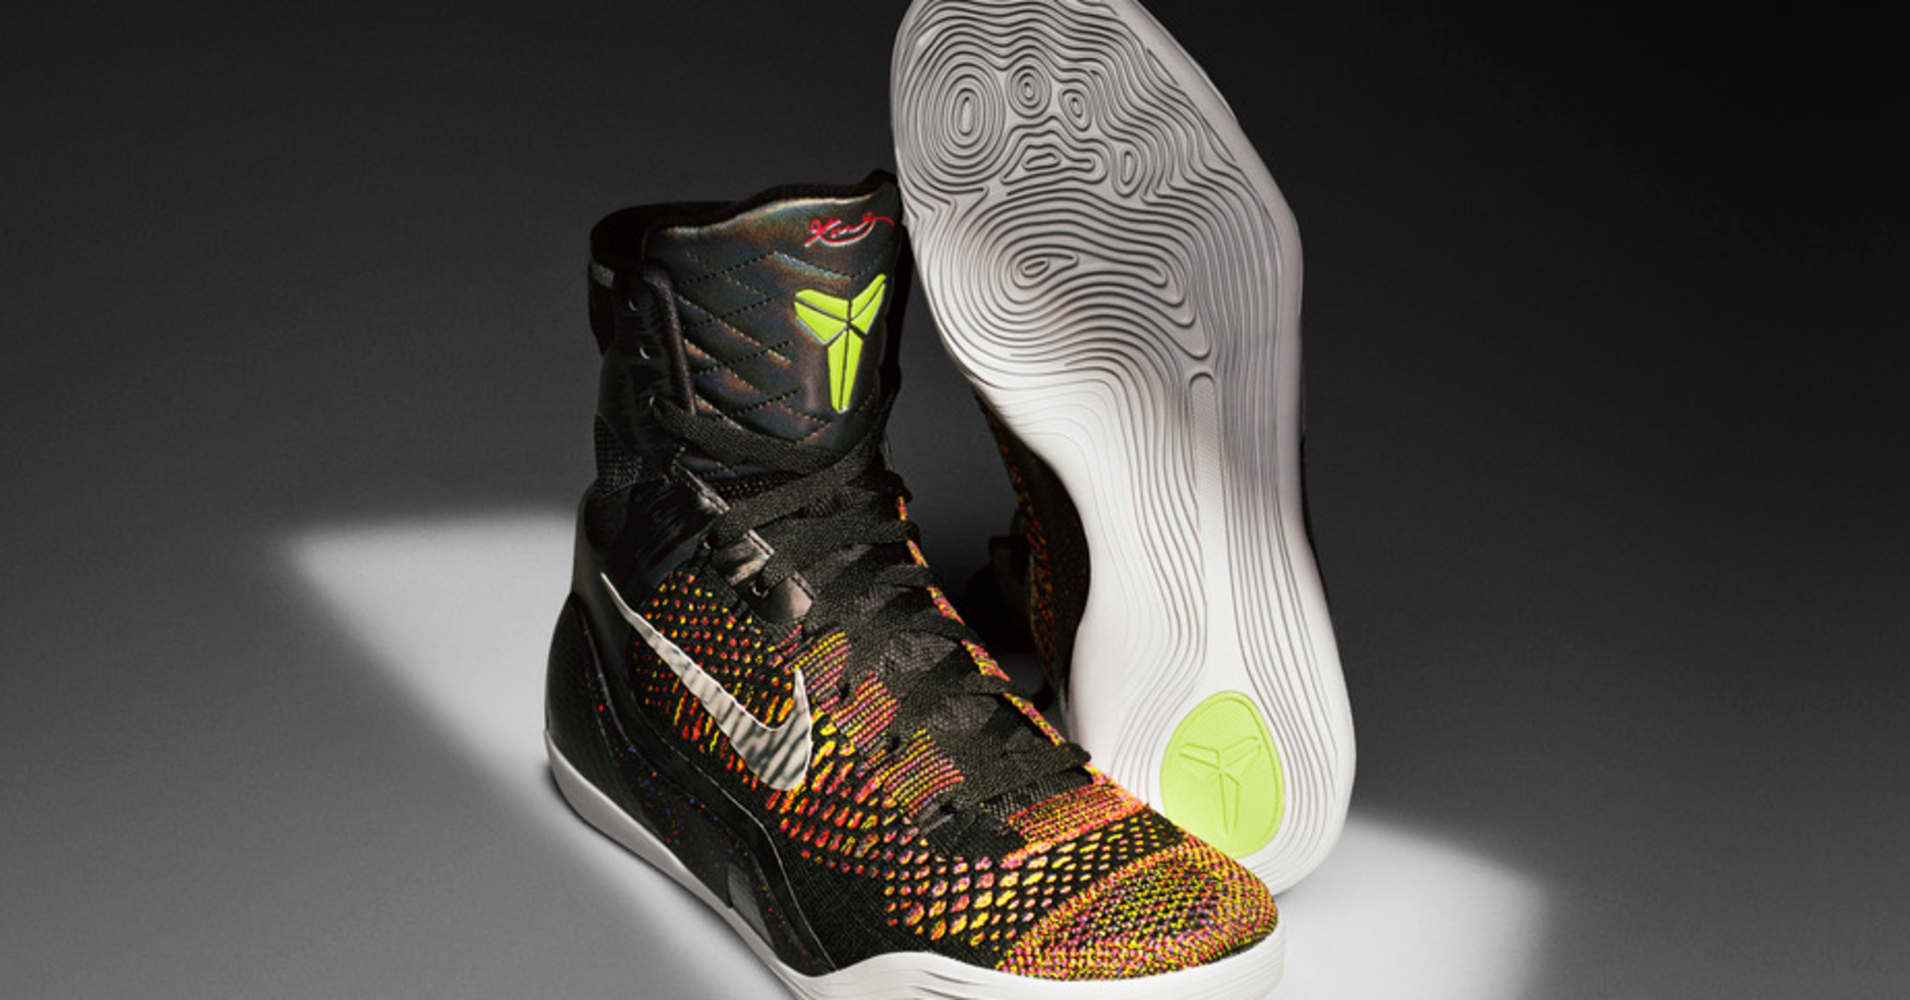 Nike  Kobe 9  basketball shoe introduced by NBA star Kobe Bryant fd9aec4f0